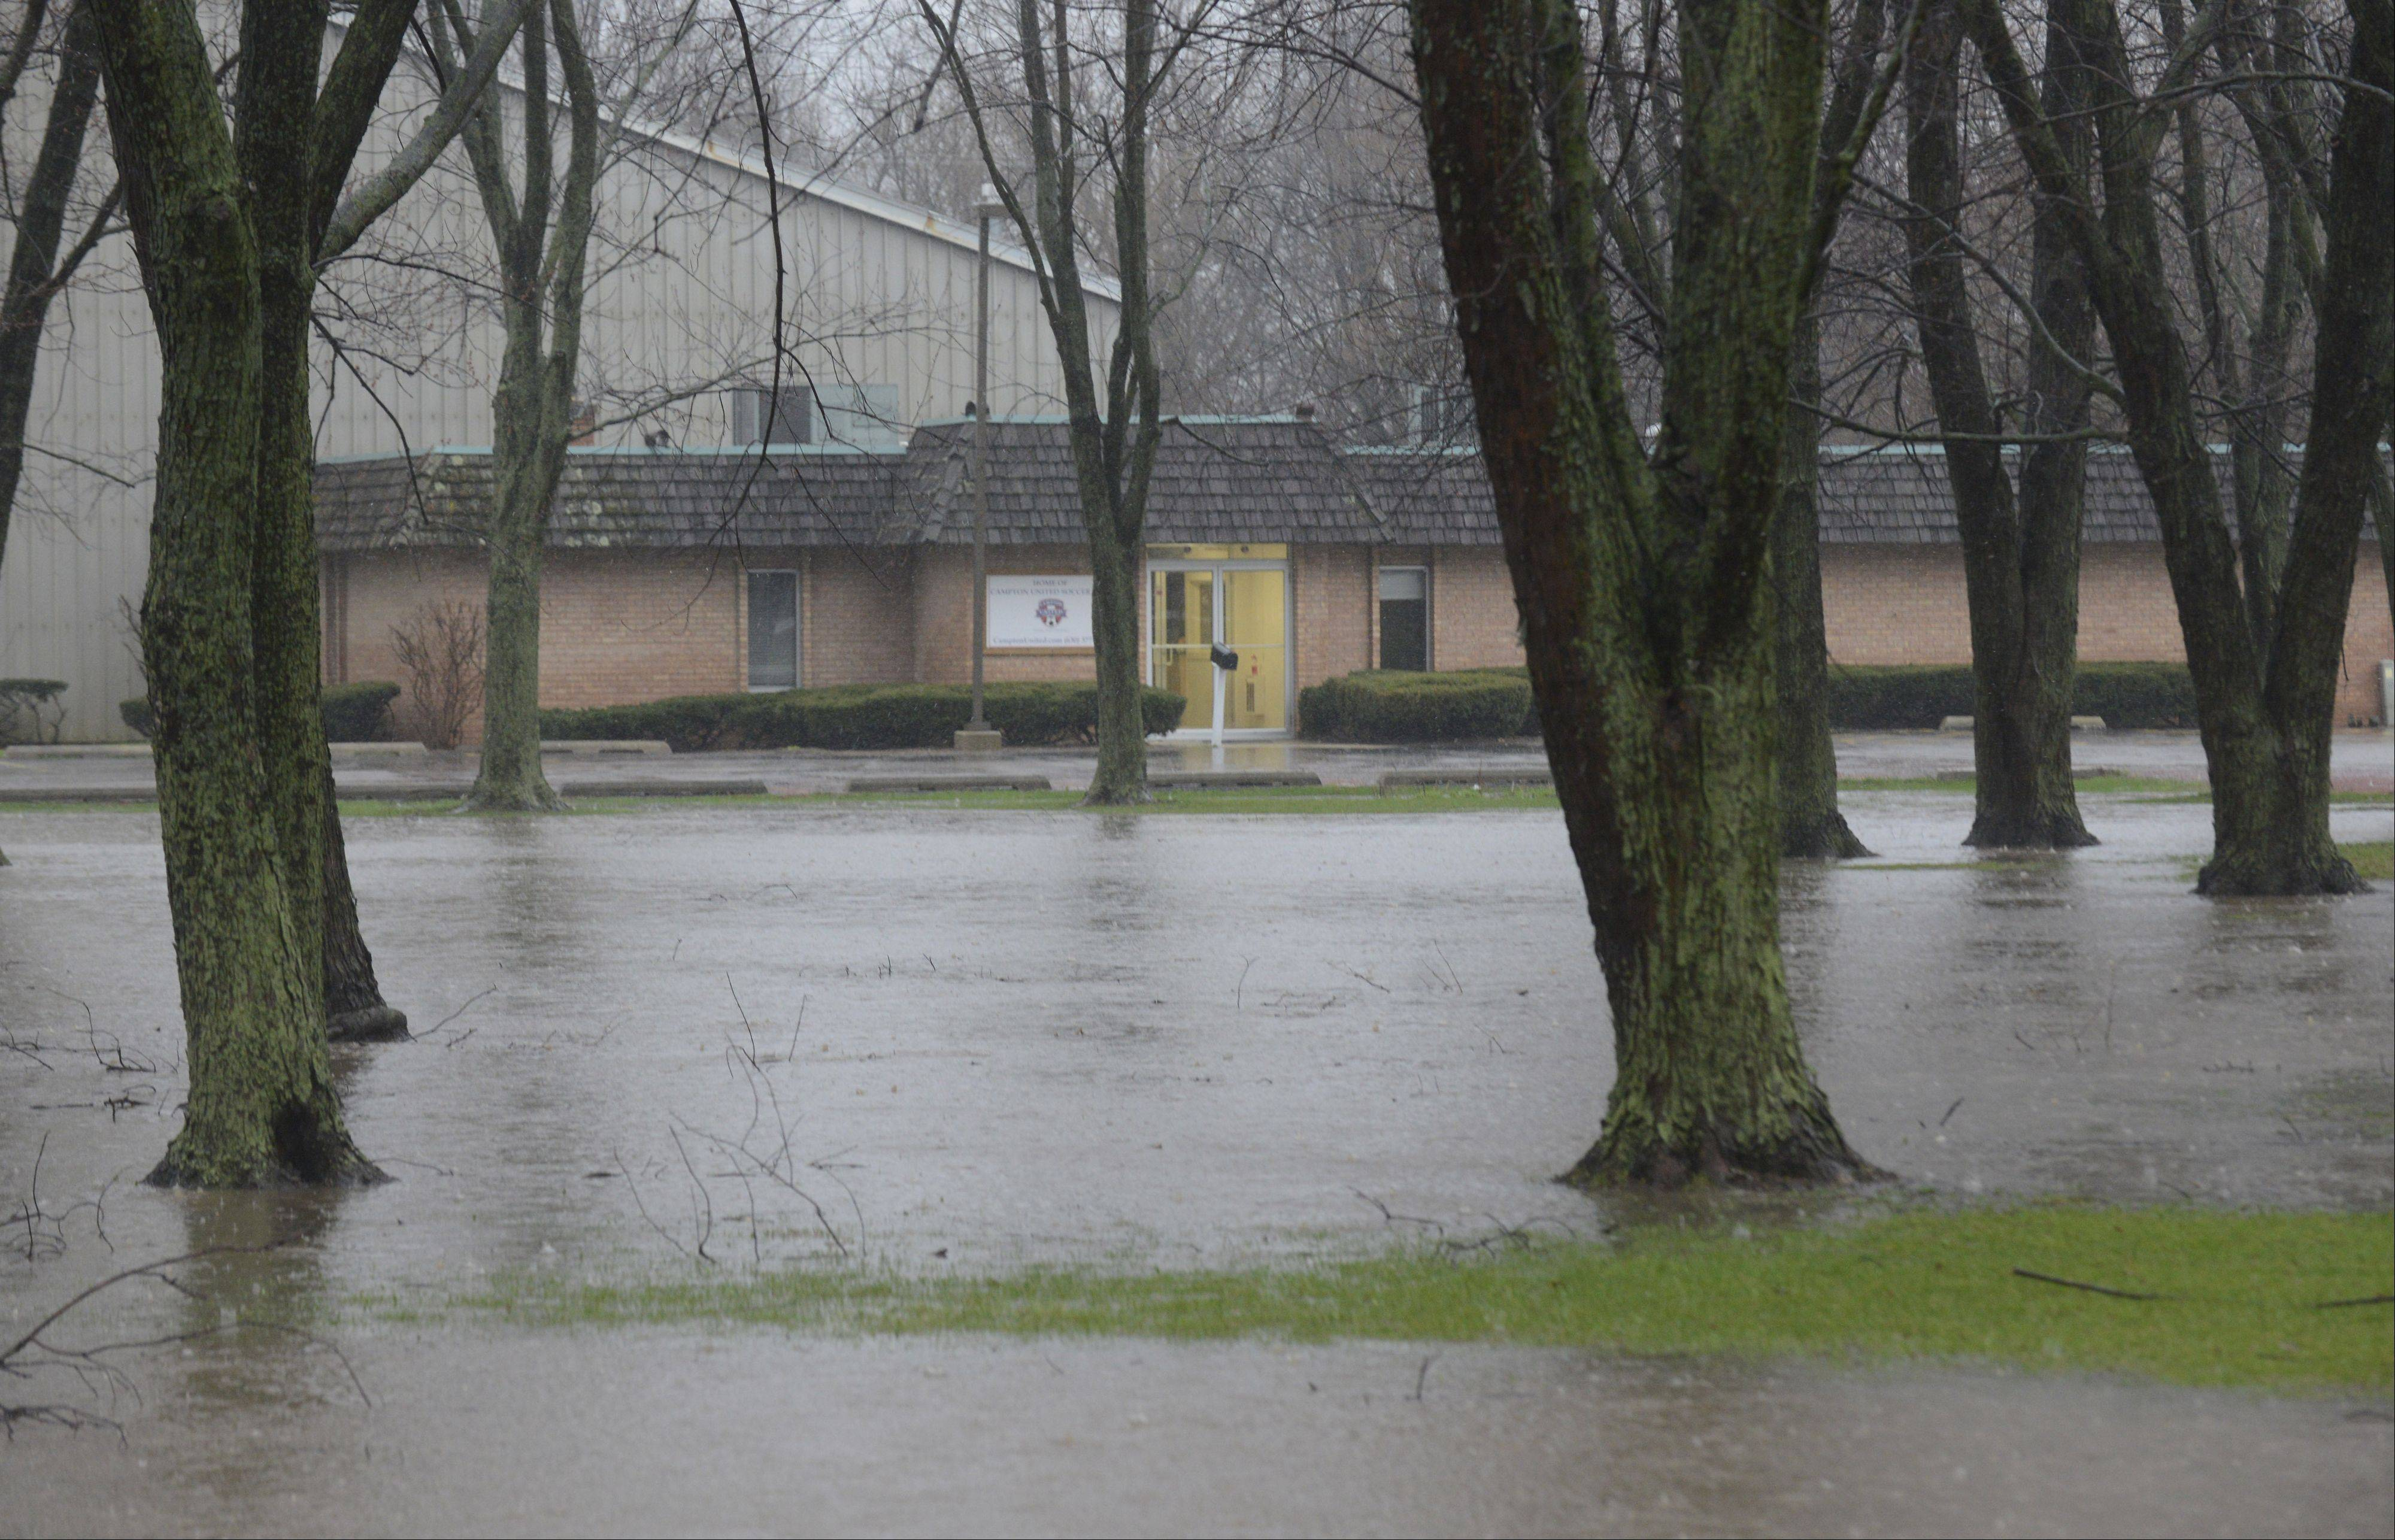 The front yard of the Campton United Soccer Club headquarters is flooded at Peck Road and Dean Street in St. Charles Thursday.